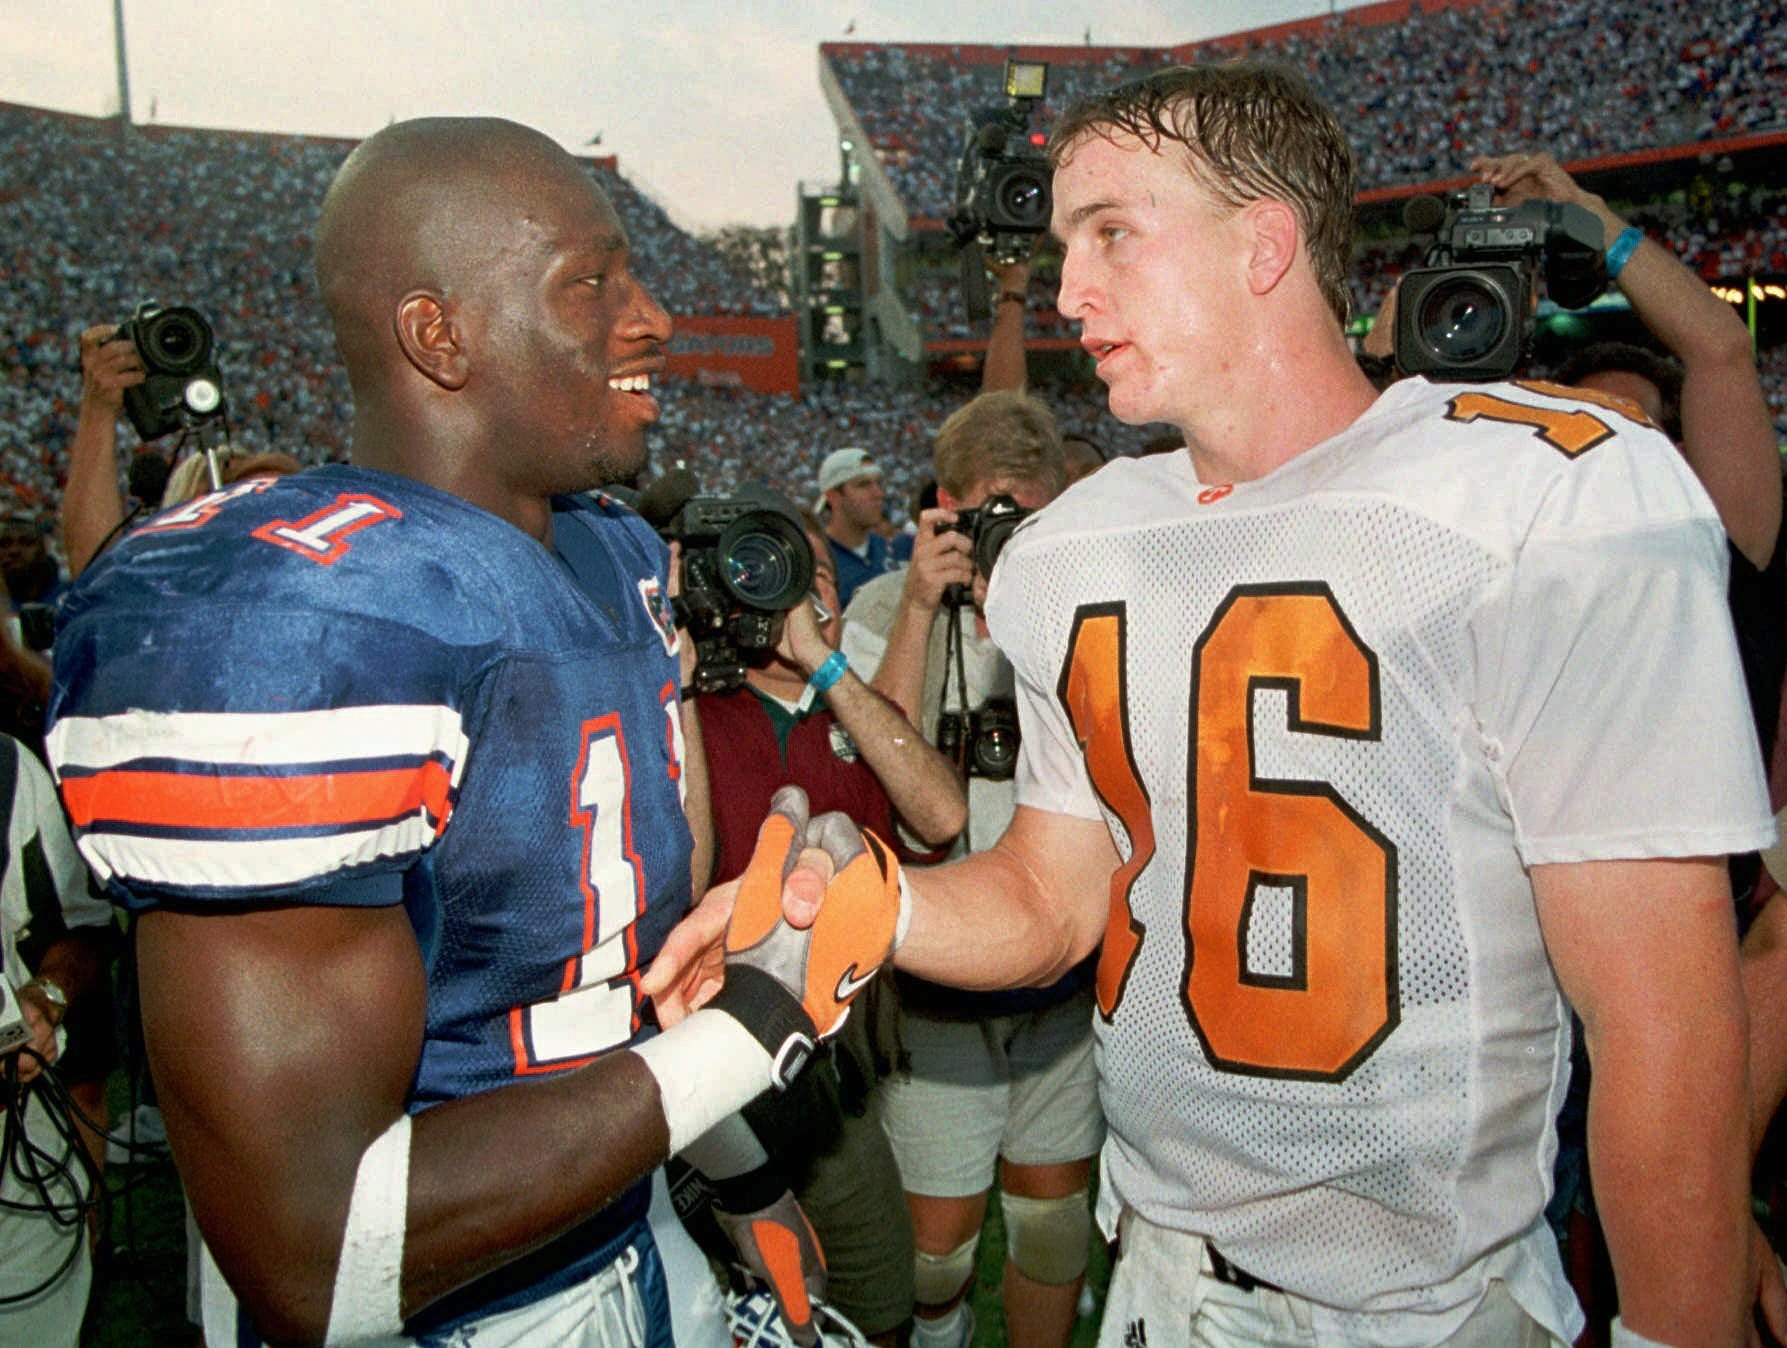 Tennessee quarterback Peyton Manning (16) congratulates Florida defensive end Thaddeus Bullard after the Gators' 33-20 win Saturday, Sept. 20, 1997 in Gainesville, Fla.